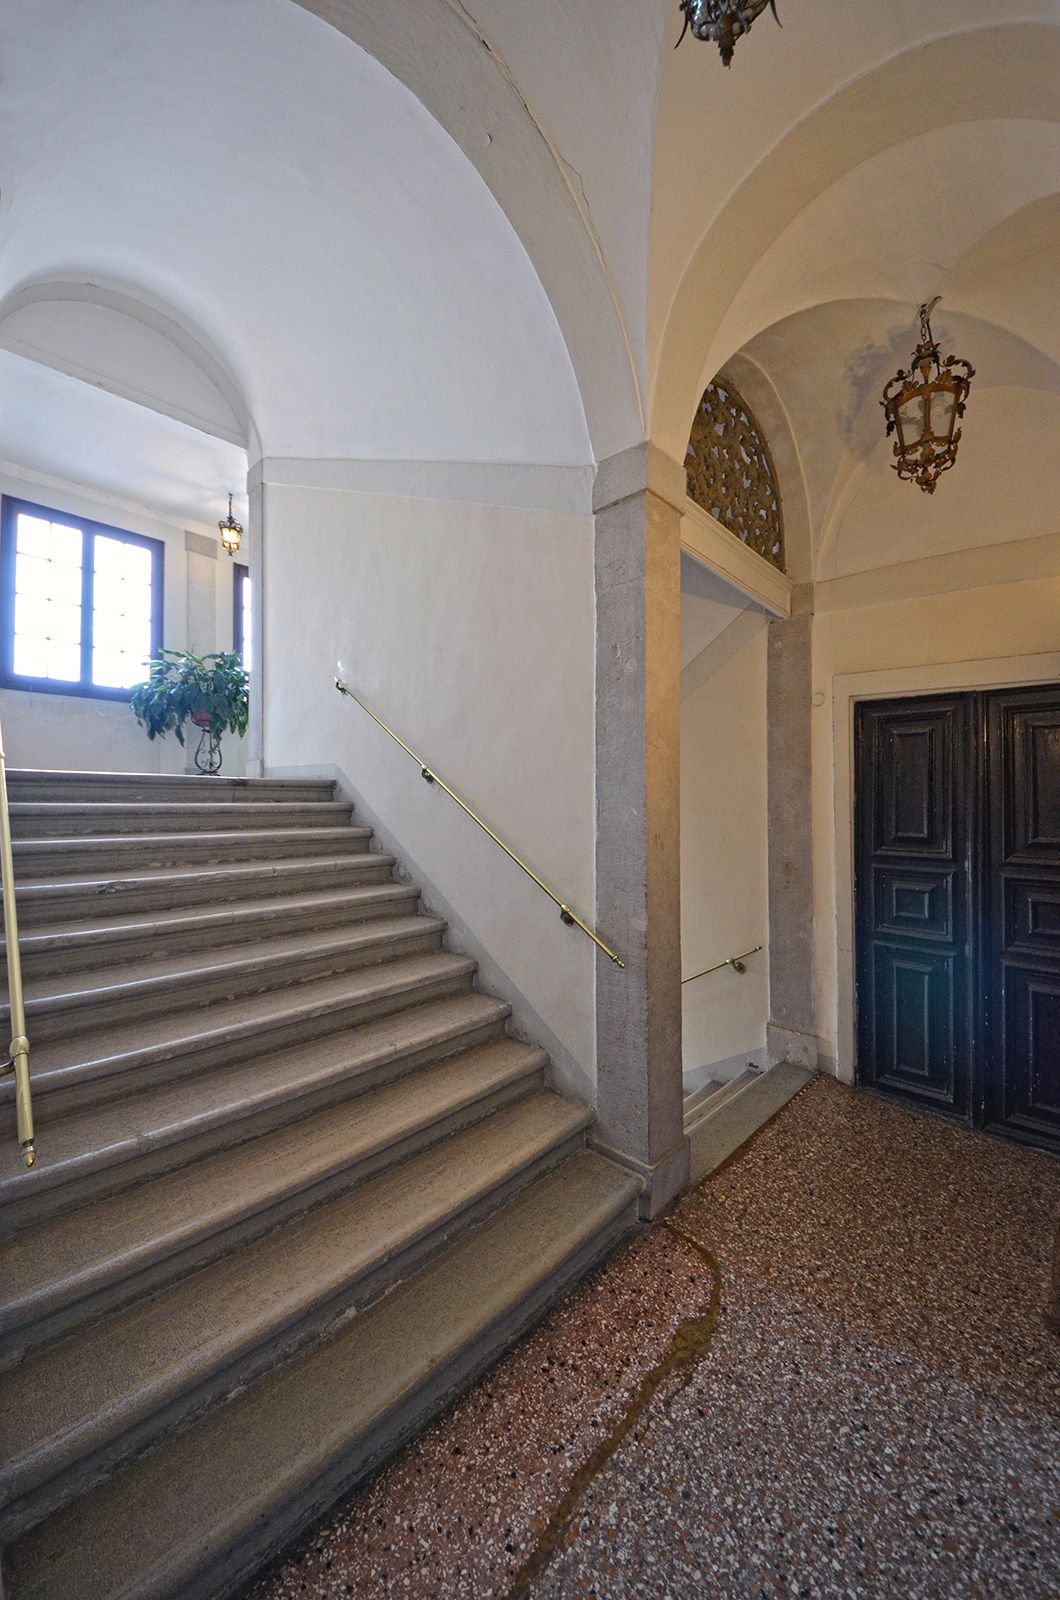 the Grassi apartment can be accessed through monumental staiway or elevator